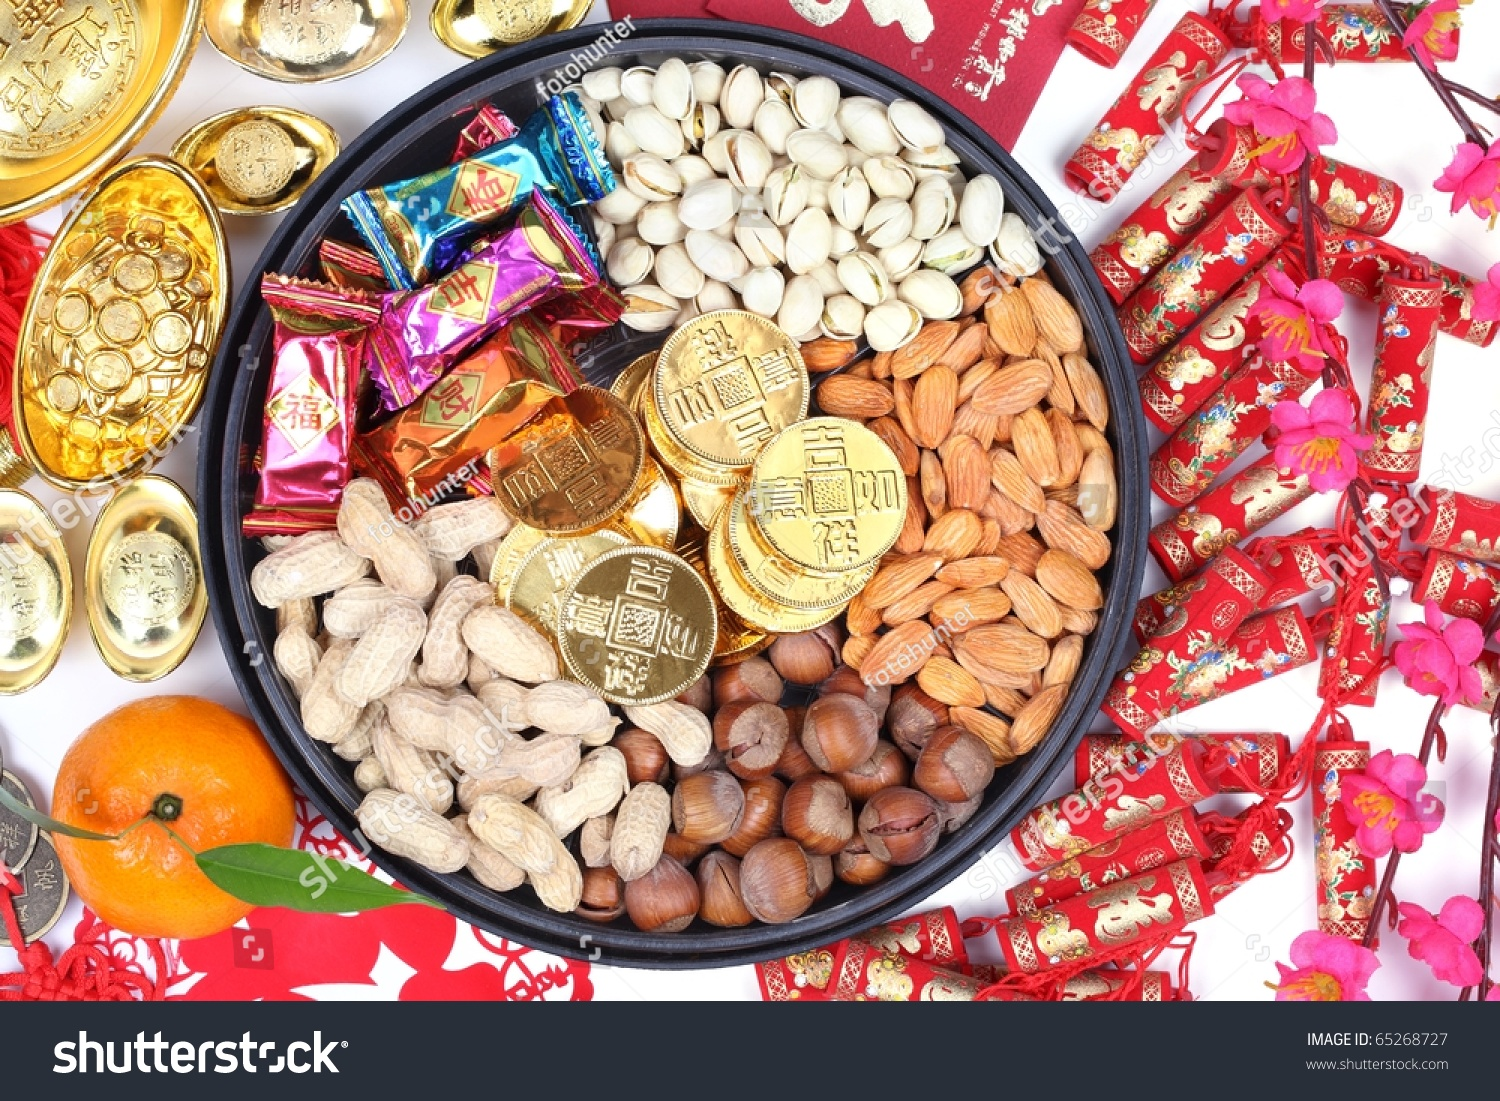 chinese new year ornaments and candy box - Chinese New Year Candy